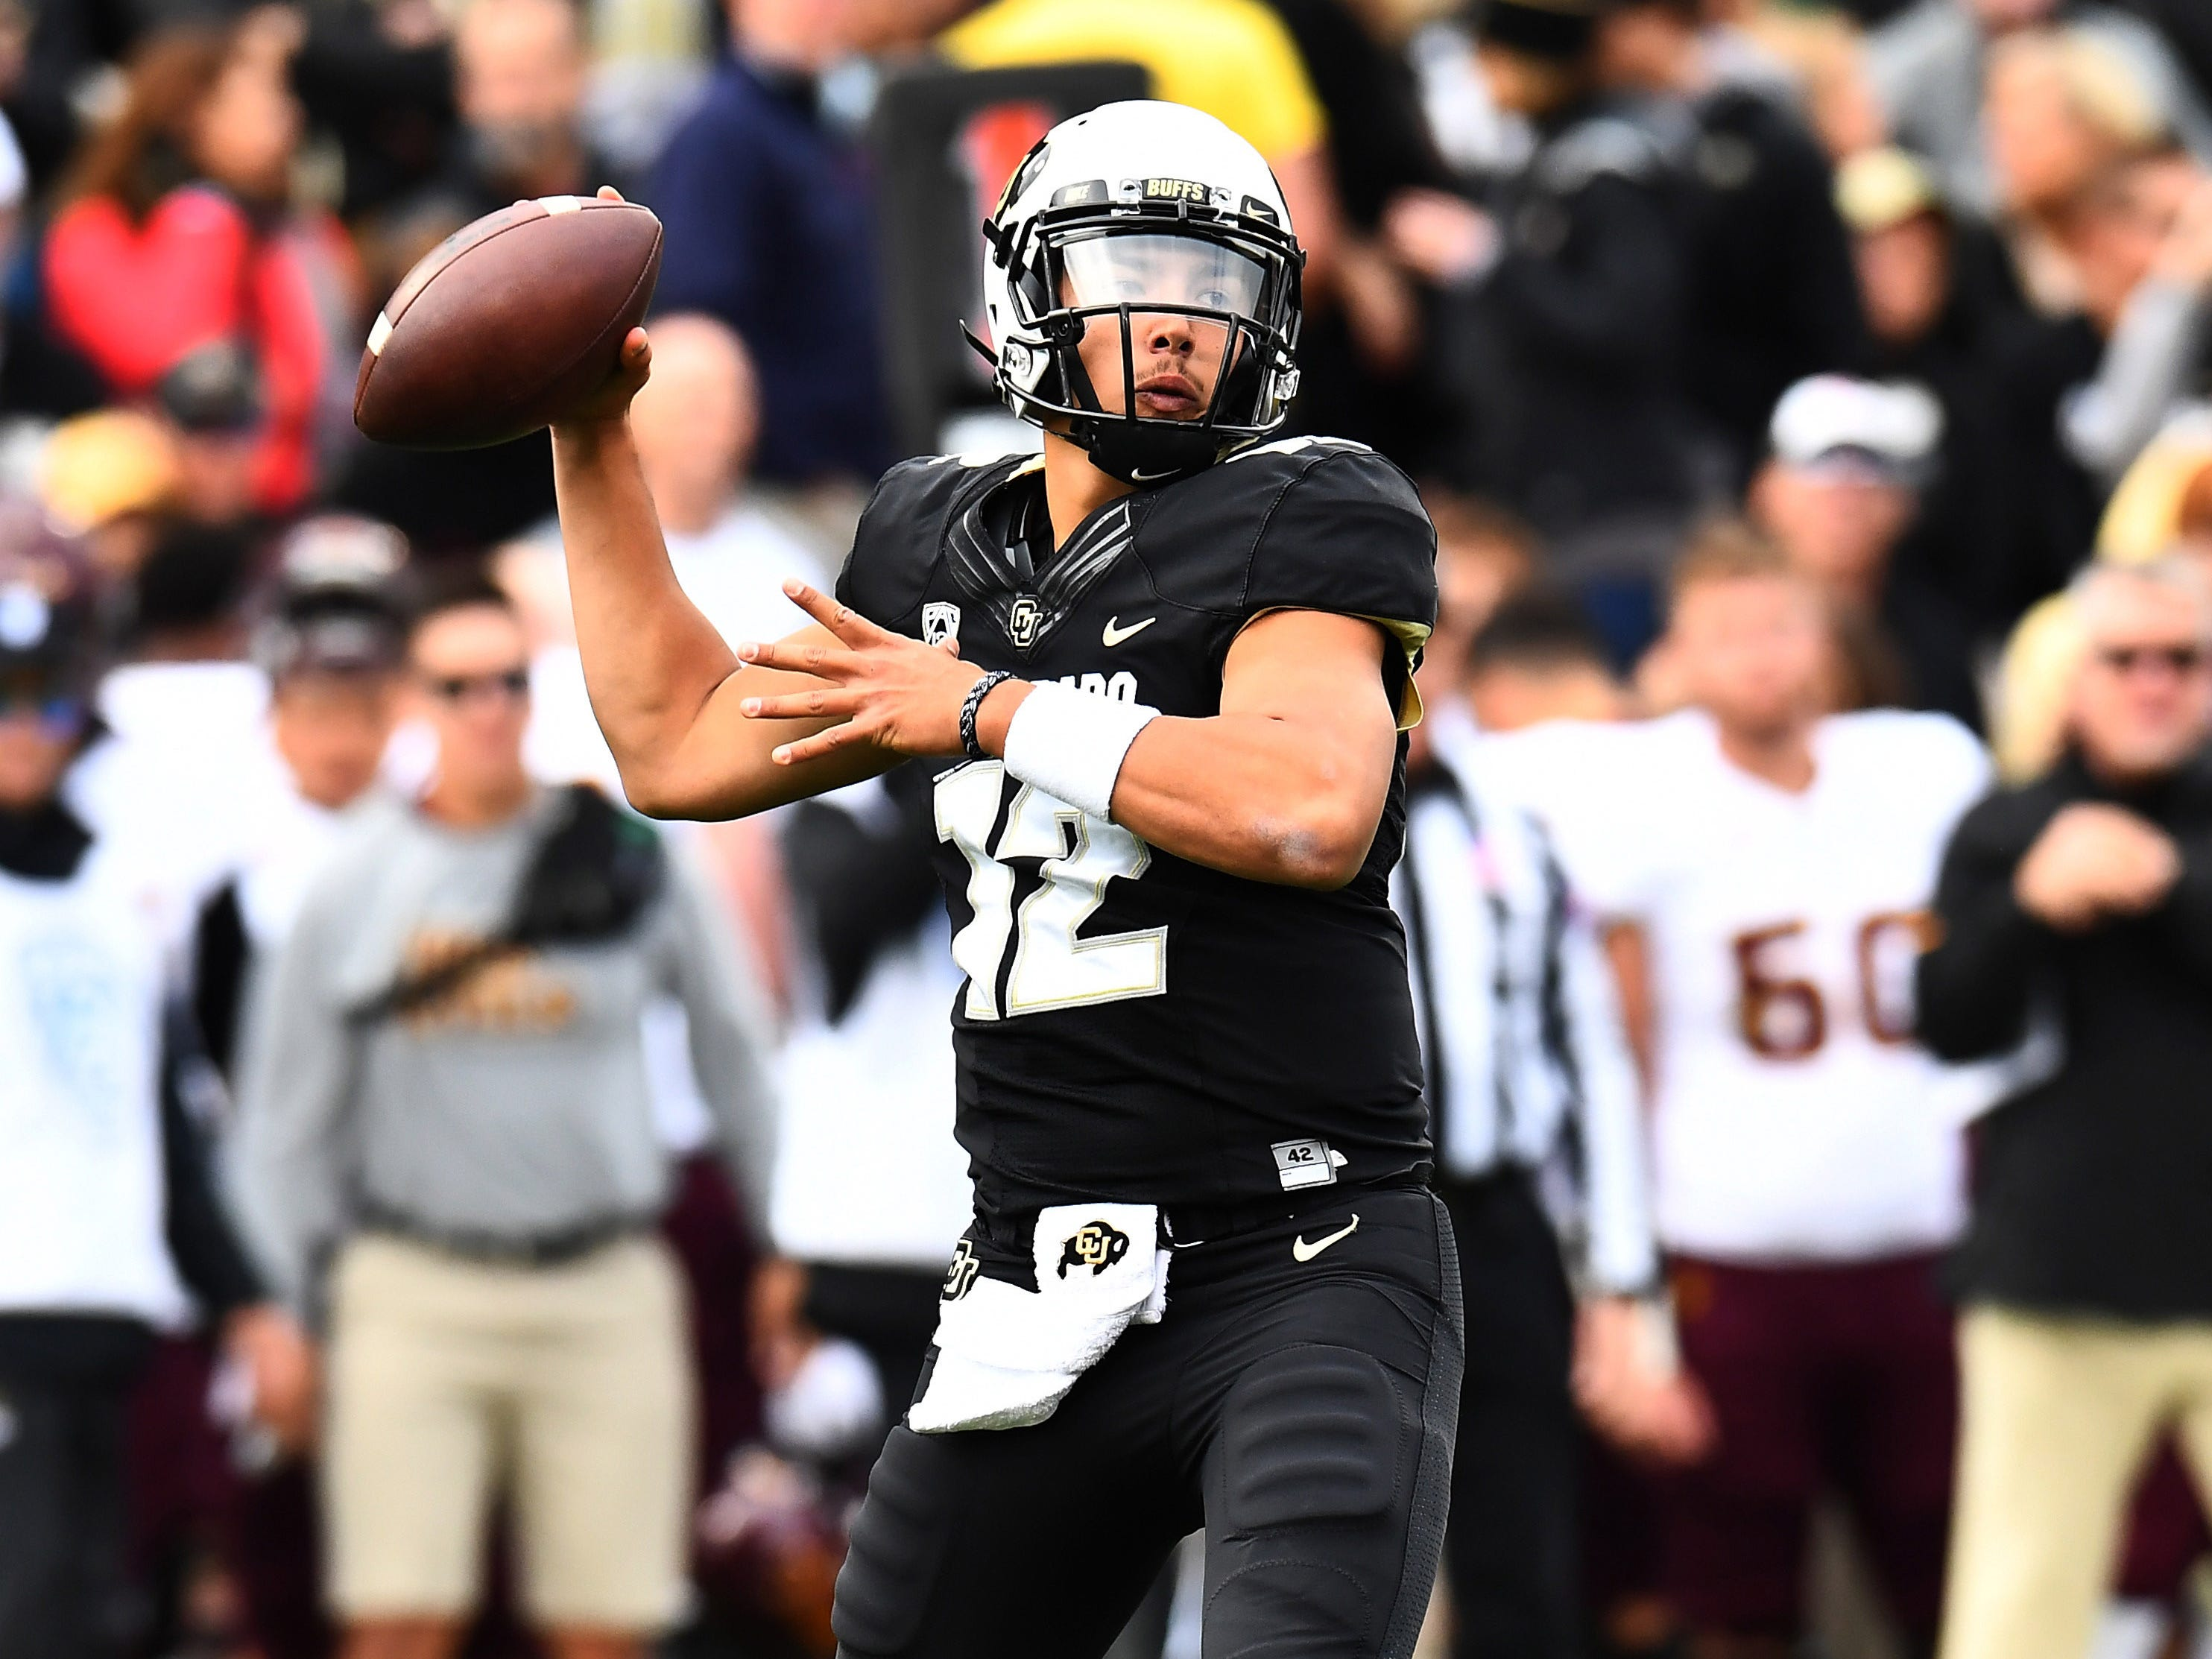 Oct 6, 2018; Boulder, CO, USA; Colorado Buffaloes quarterback Steven Montez (12) looks to pass in the first quarter against the Arizona State Sun Devils at Folsom Field. Mandatory Credit: Ron Chenoy-USA TODAY Sports